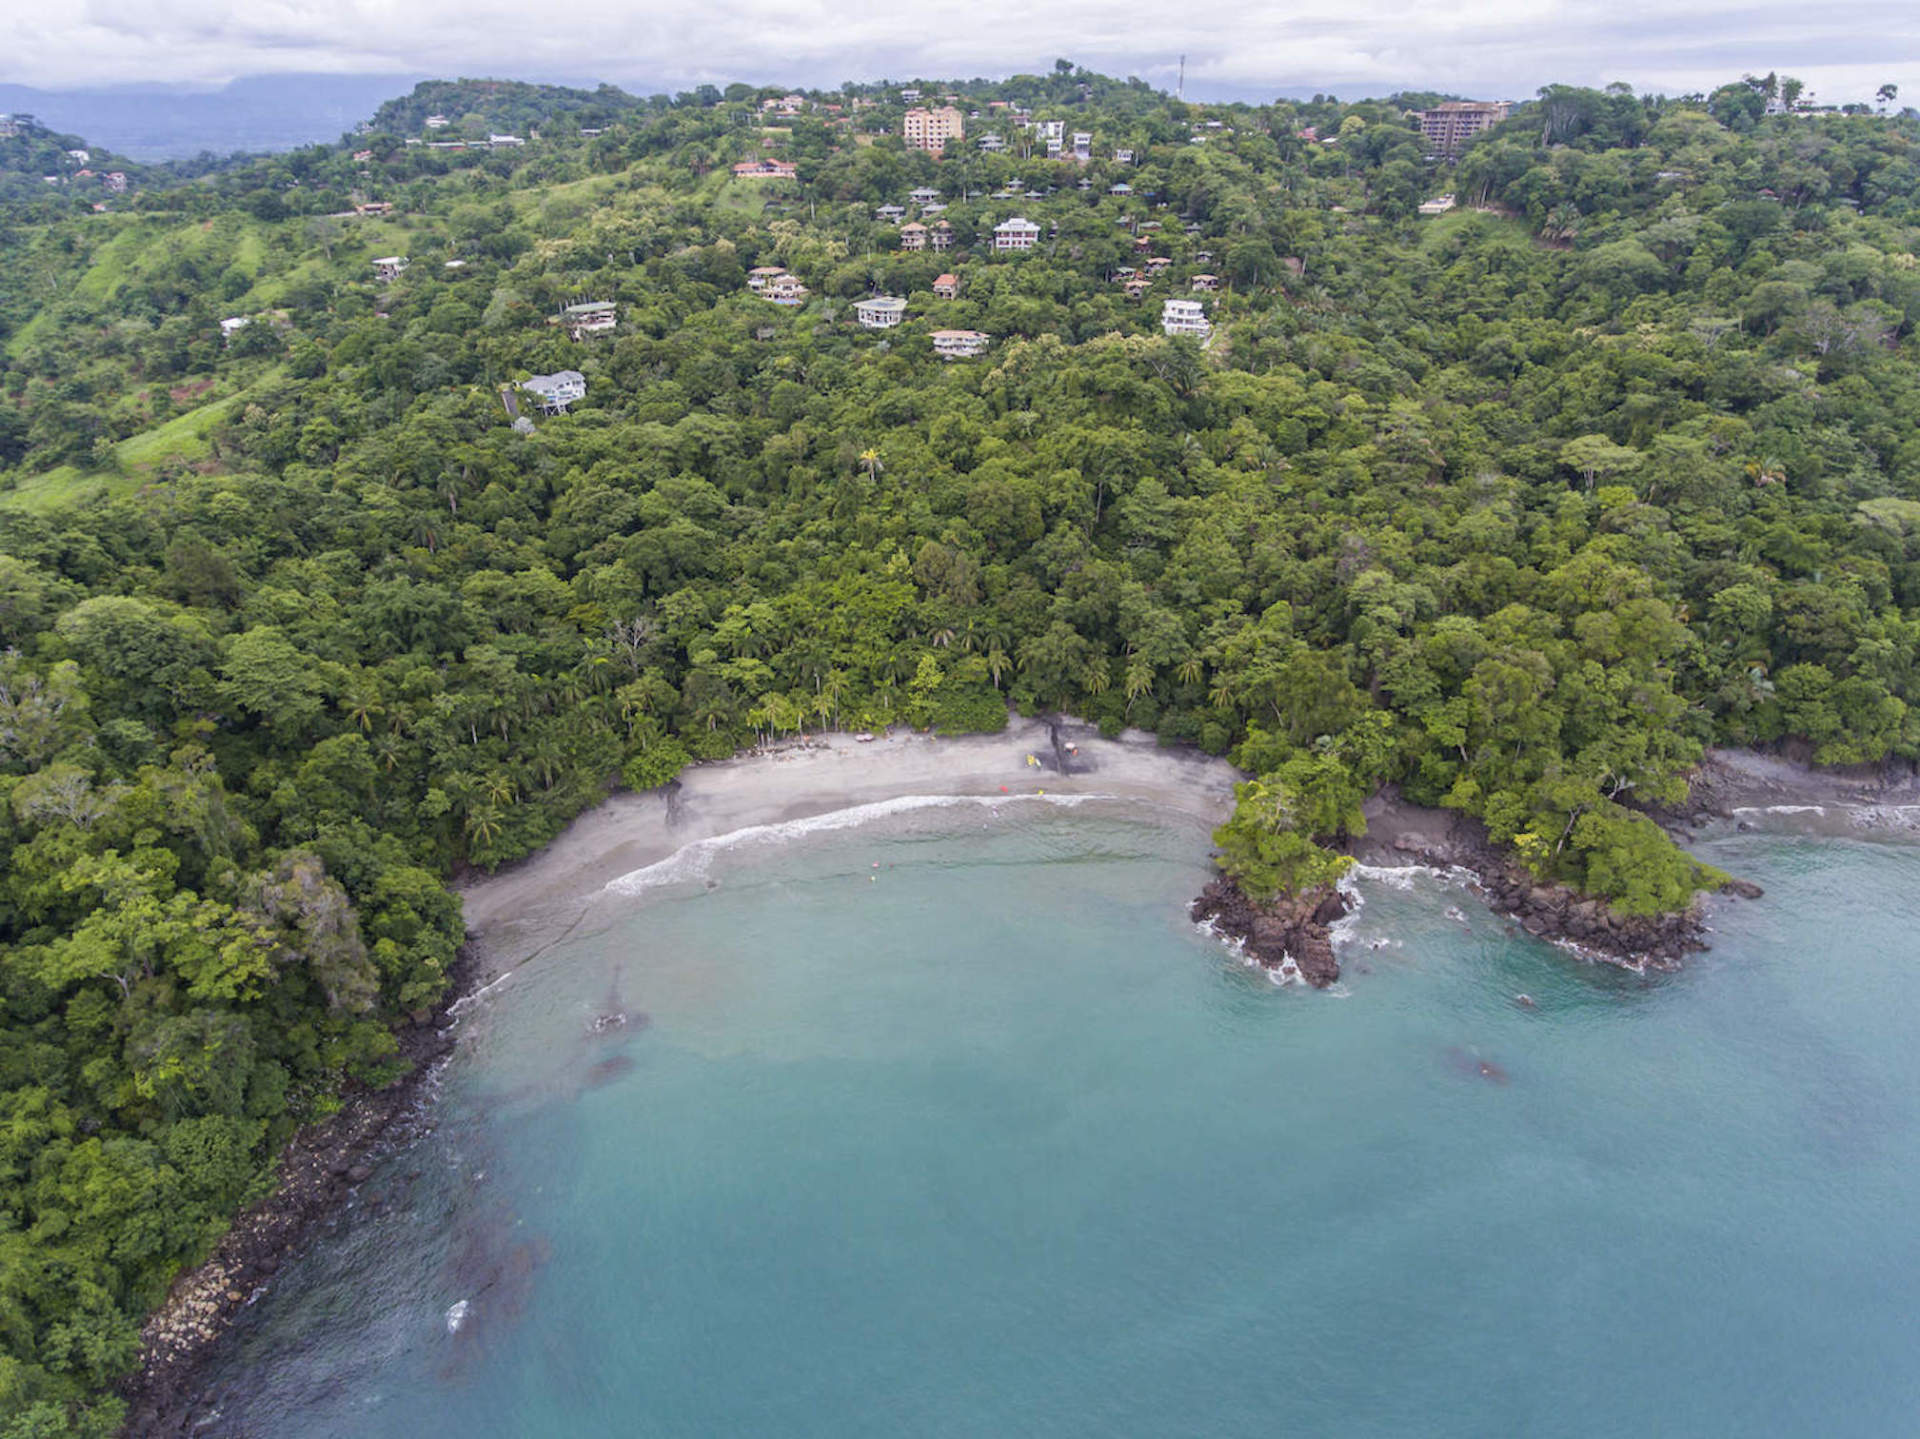 Tulemar - the place to stay in Manuel Antonio